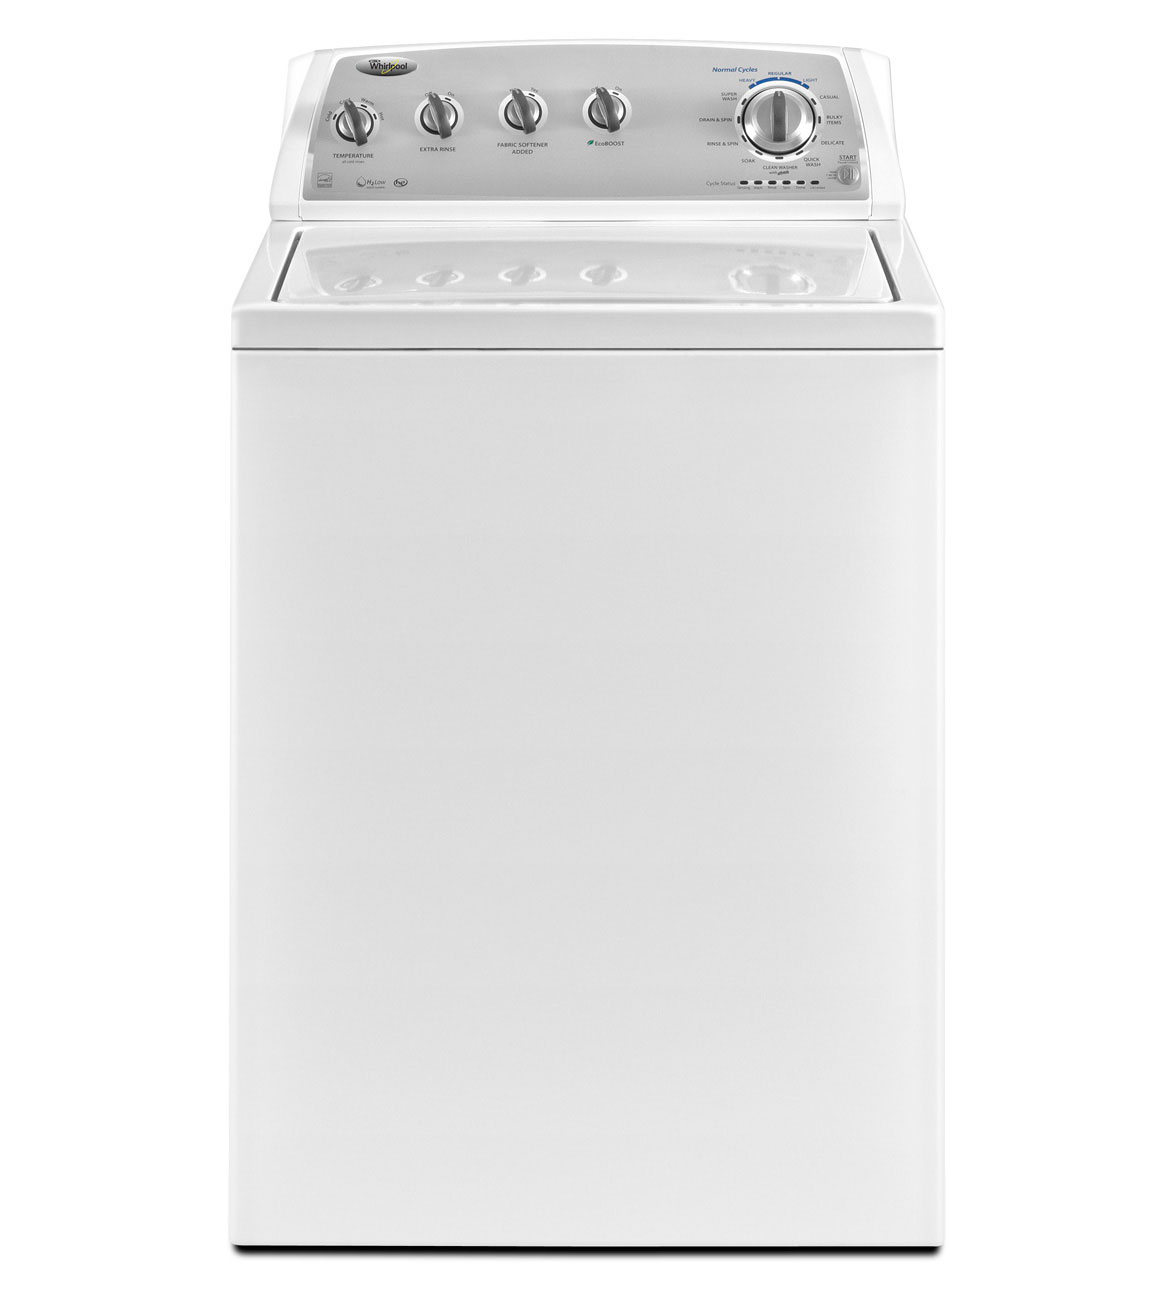 Whirlpool 3.6 cu ft High-Efficiency Top-Load Washer (White) ENERGY STAR (Model: WTW4950XW) - Reviews of Top 11 Top Load Washers